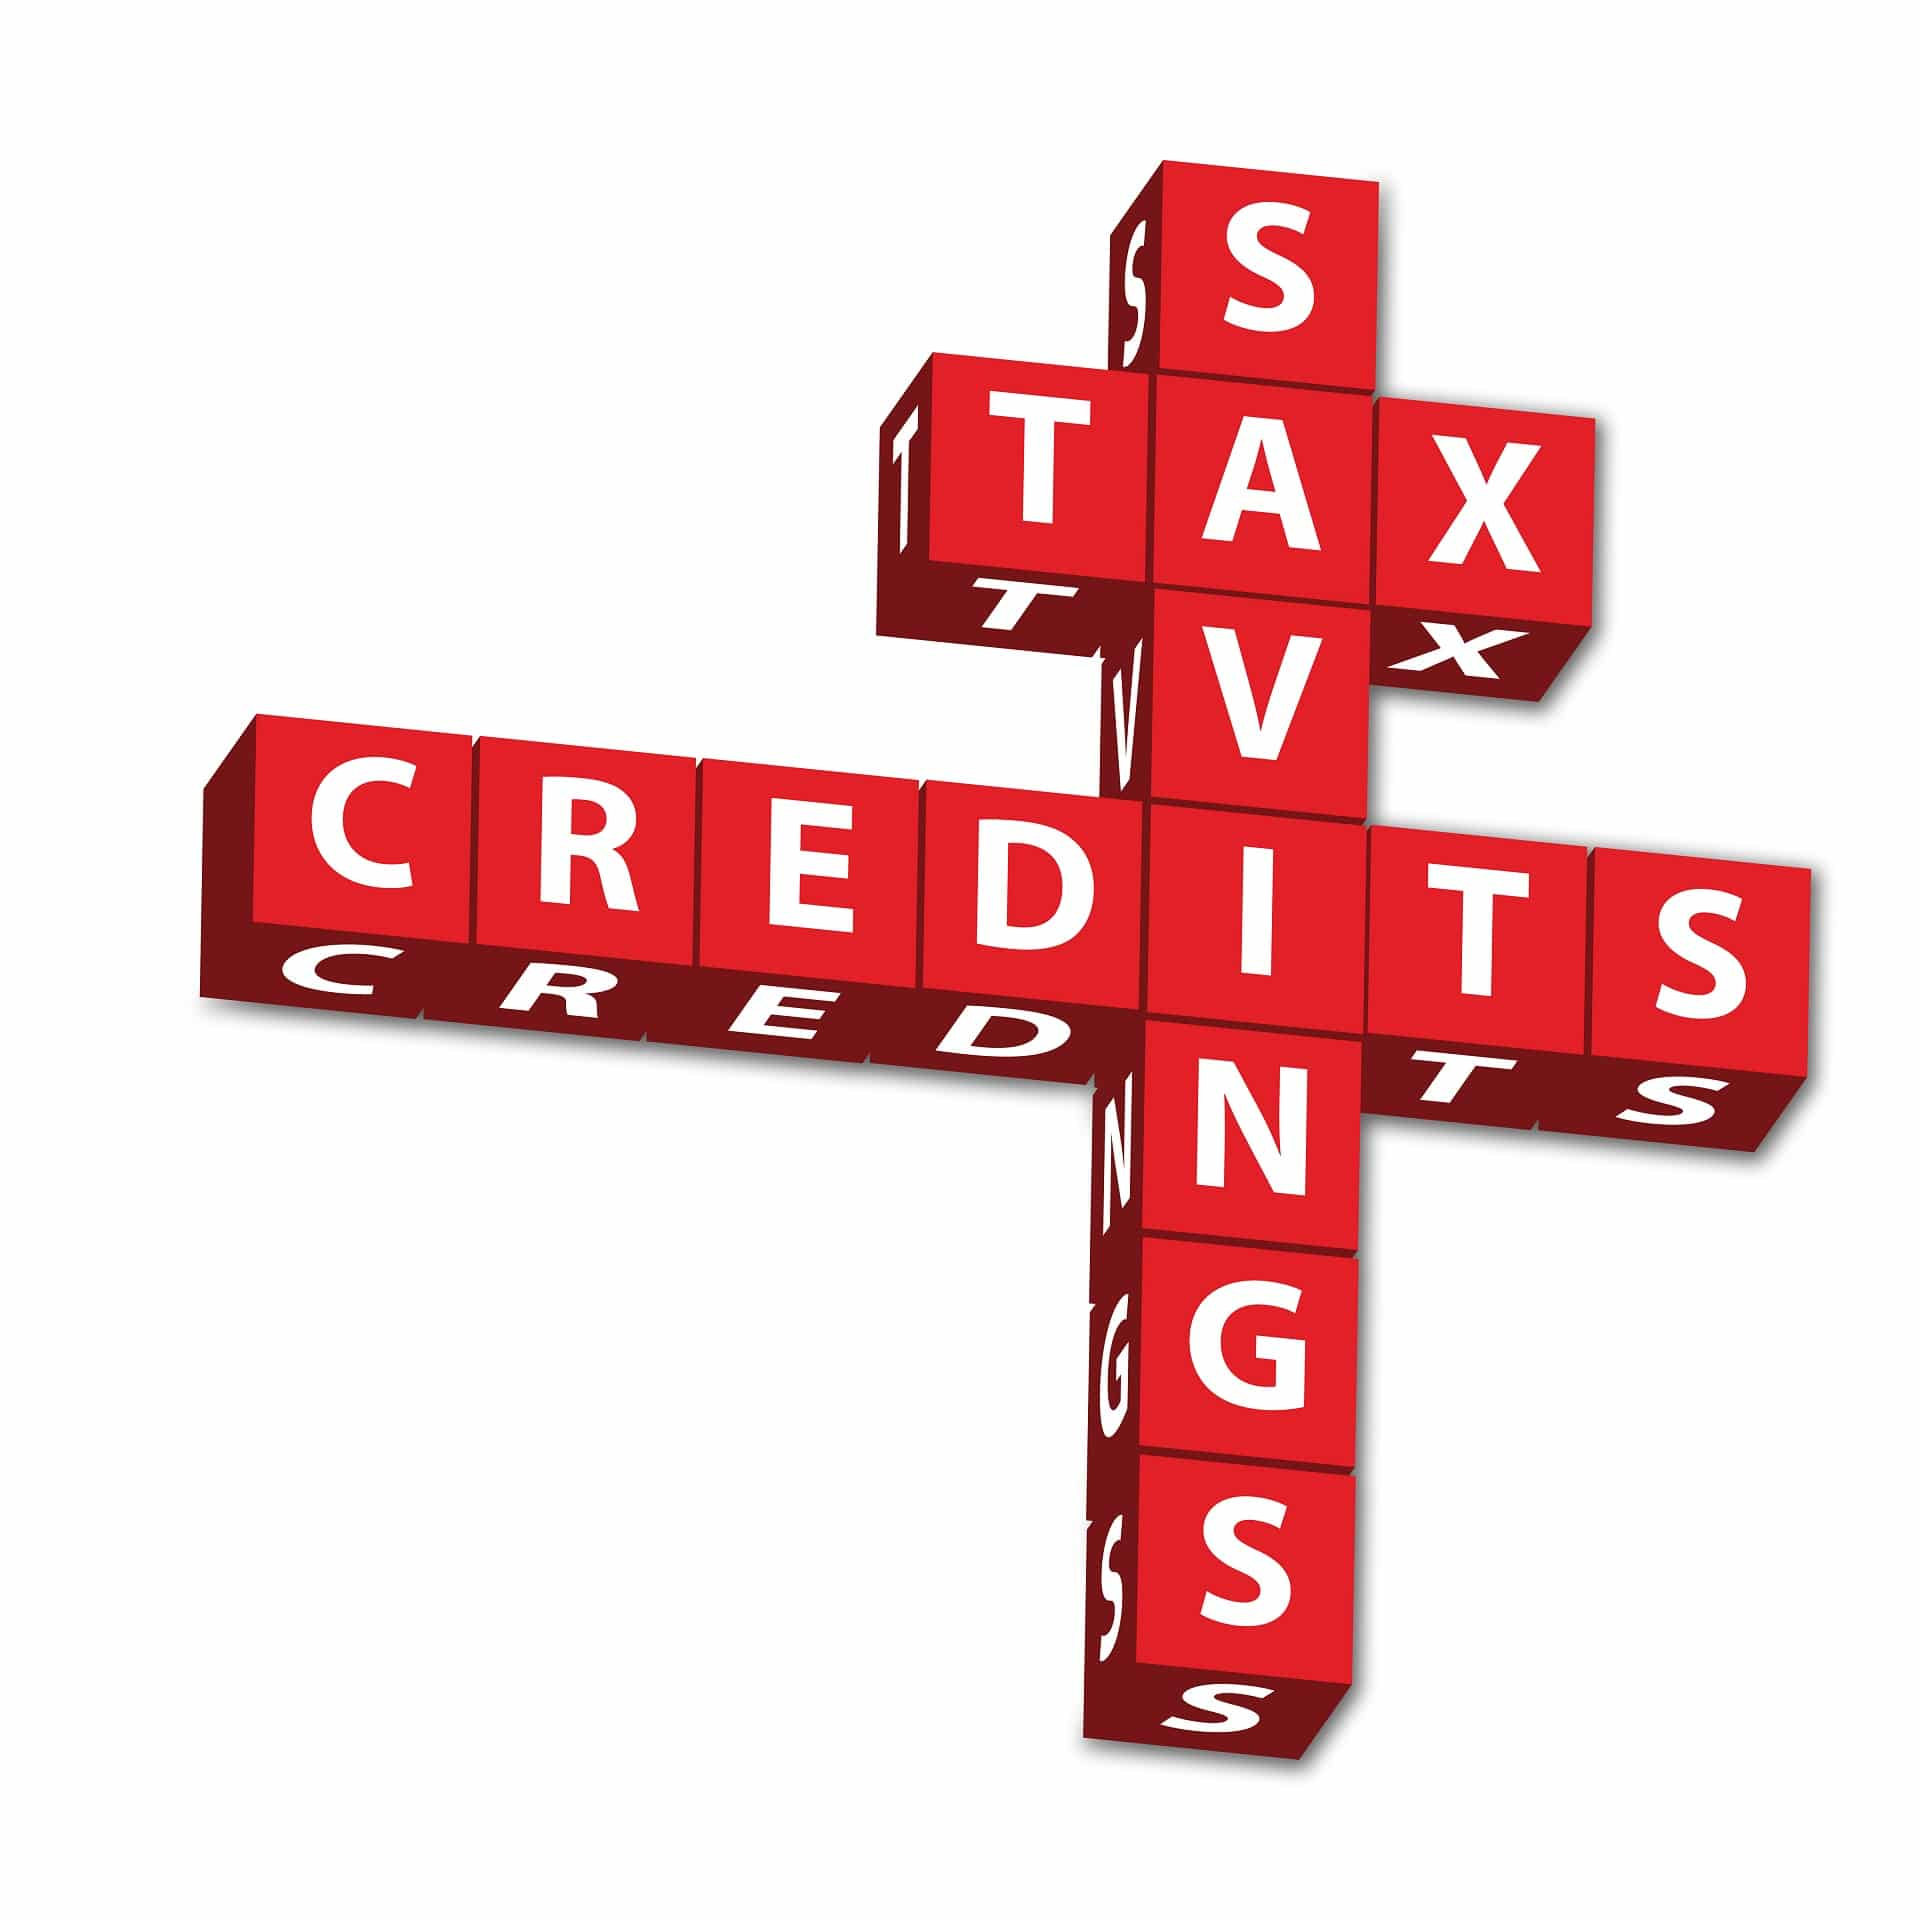 tax credits available to small businesses and freelancers